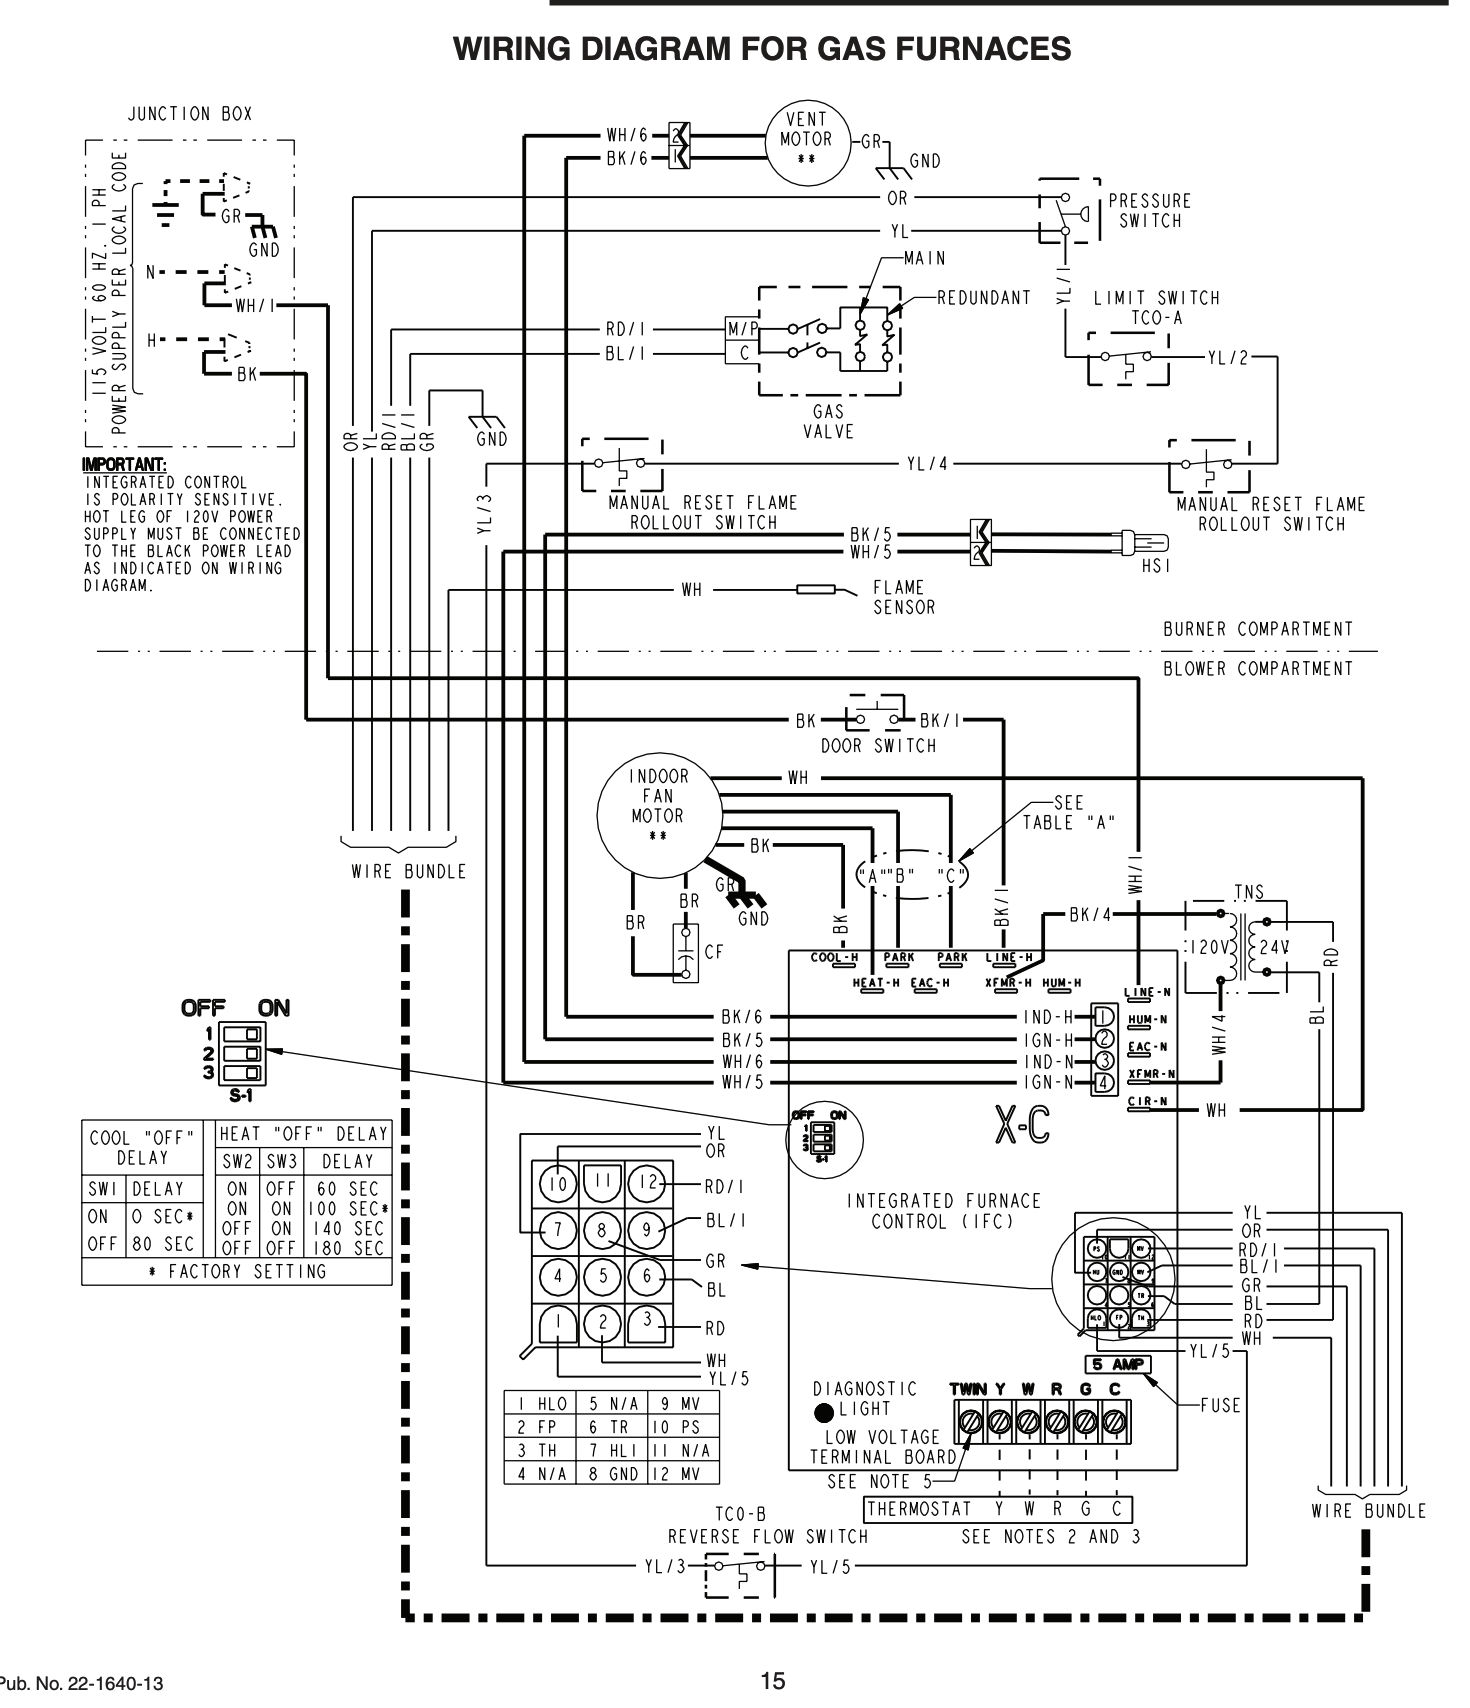 hight resolution of heil schematics wiring diagramschematic tempstar tempstar for wiring heil nulk075dg05 wiring diagram heil schematics